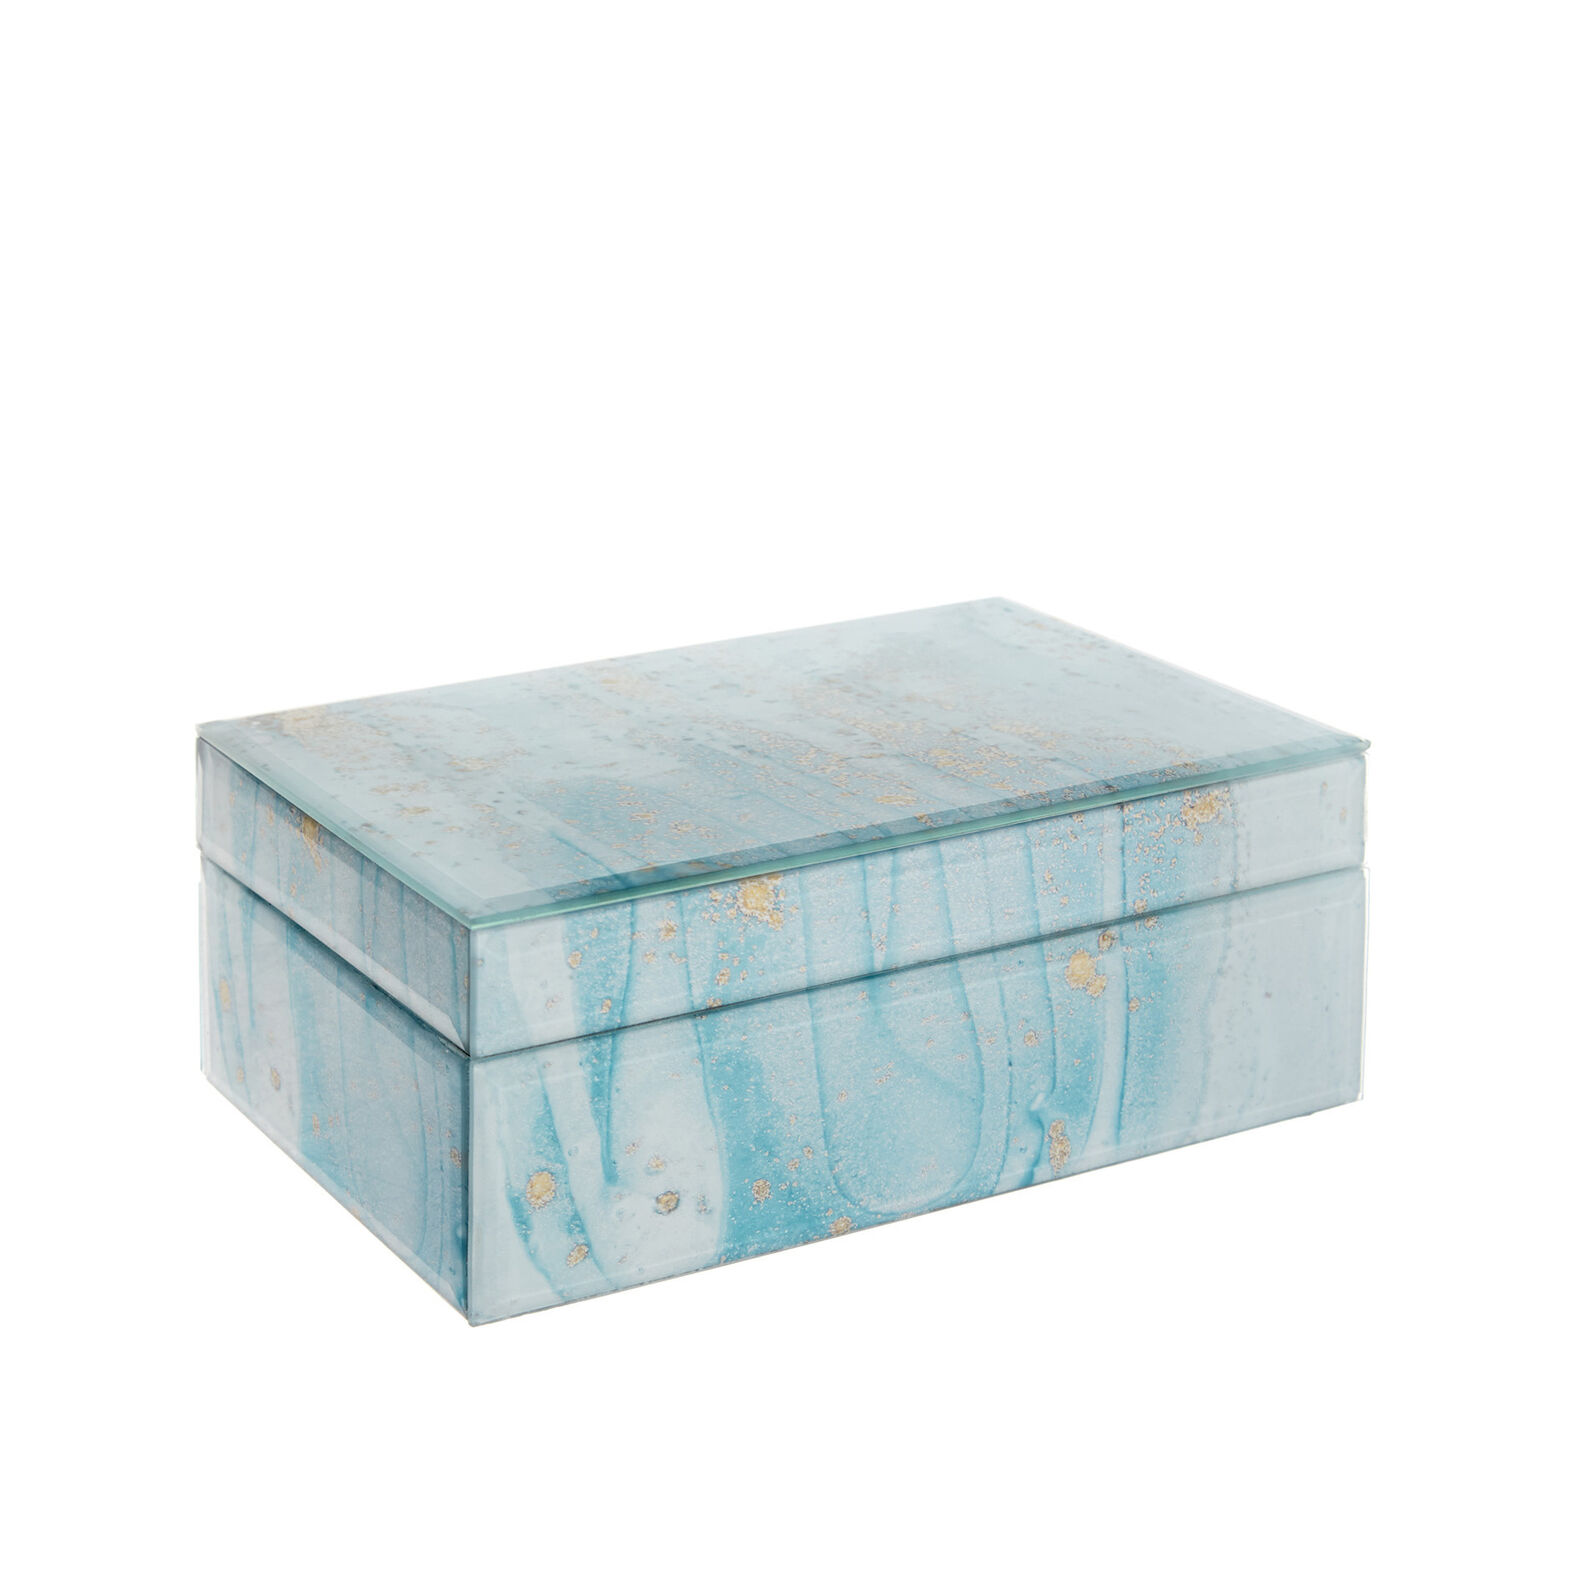 Marbled-effect box